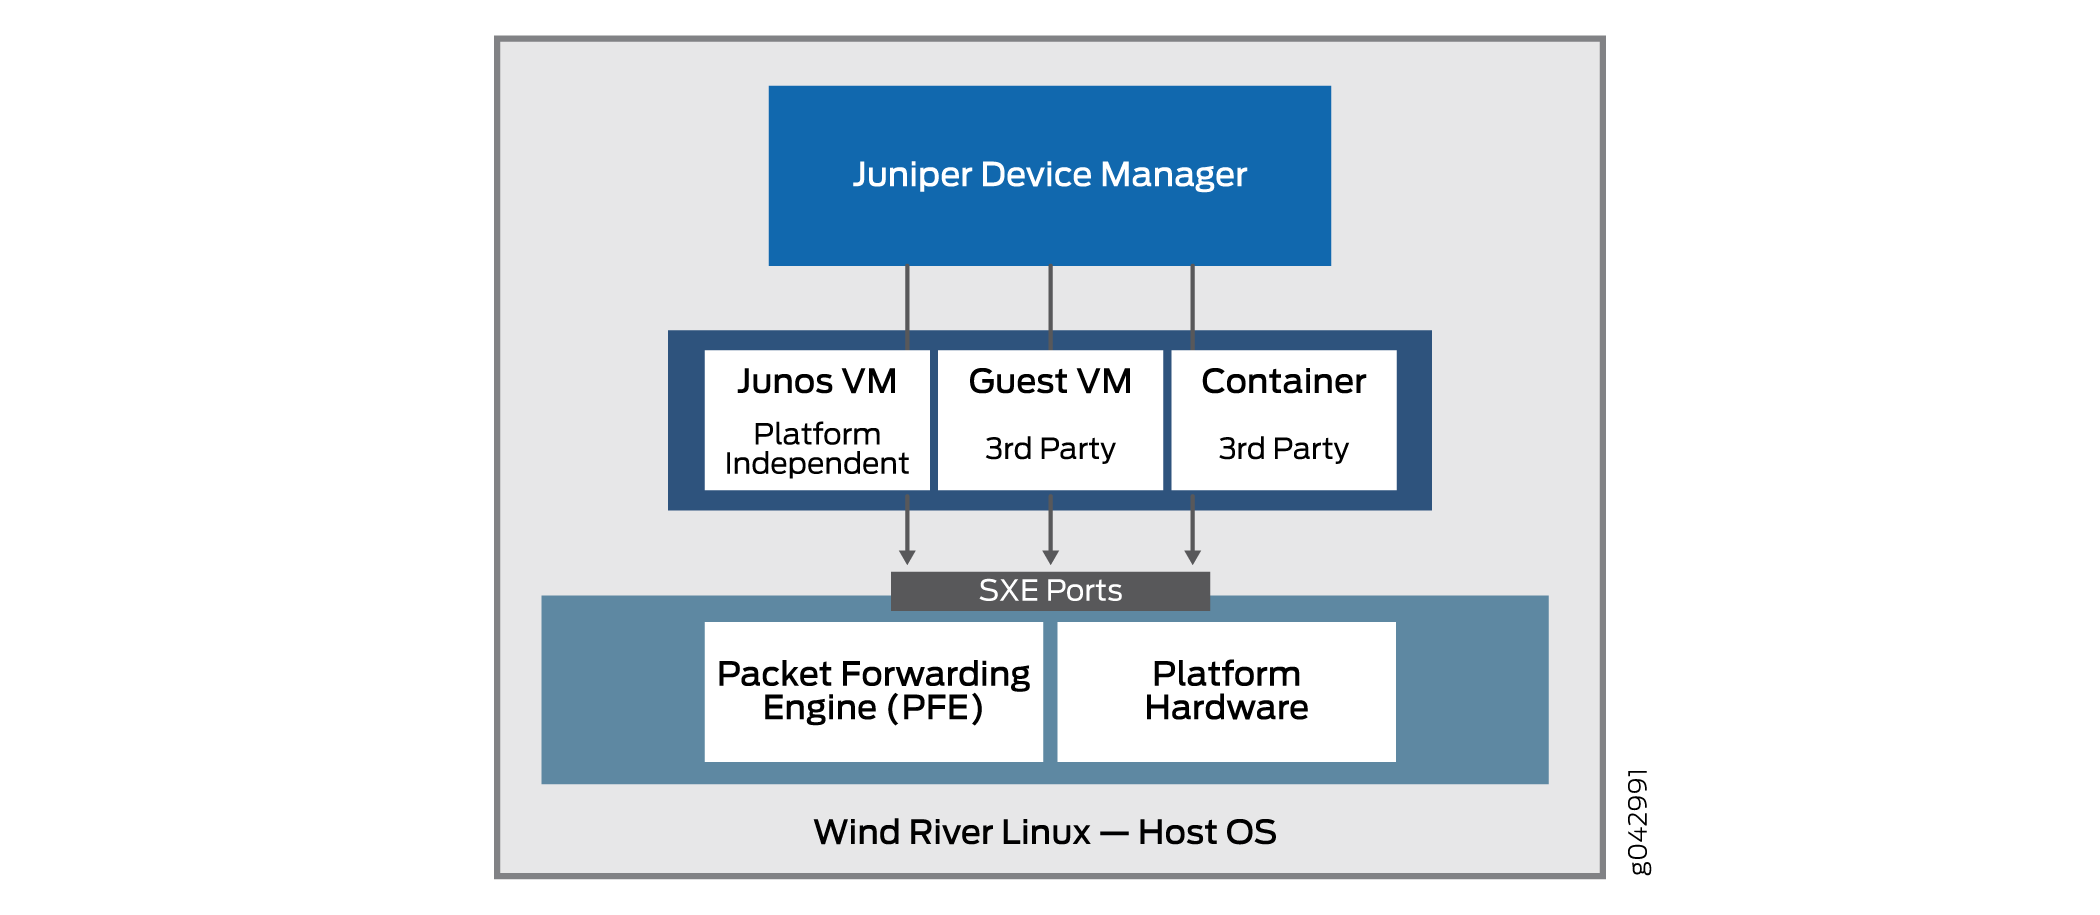 Position of the Juniper Device Manager